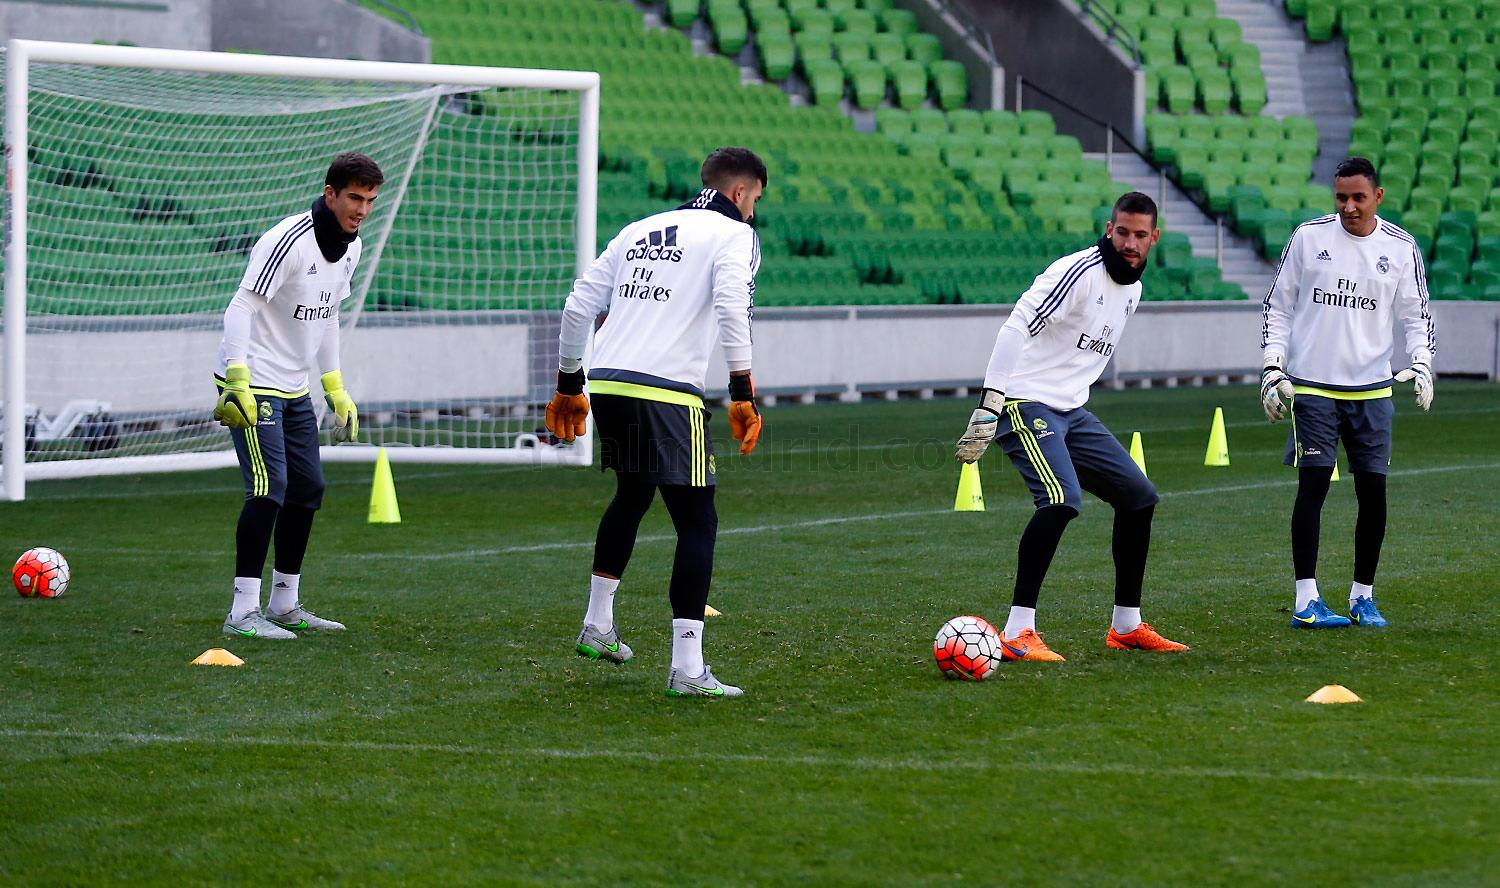 Real Madrid - Entrenamiento del Real Madrid - 23-07-2015